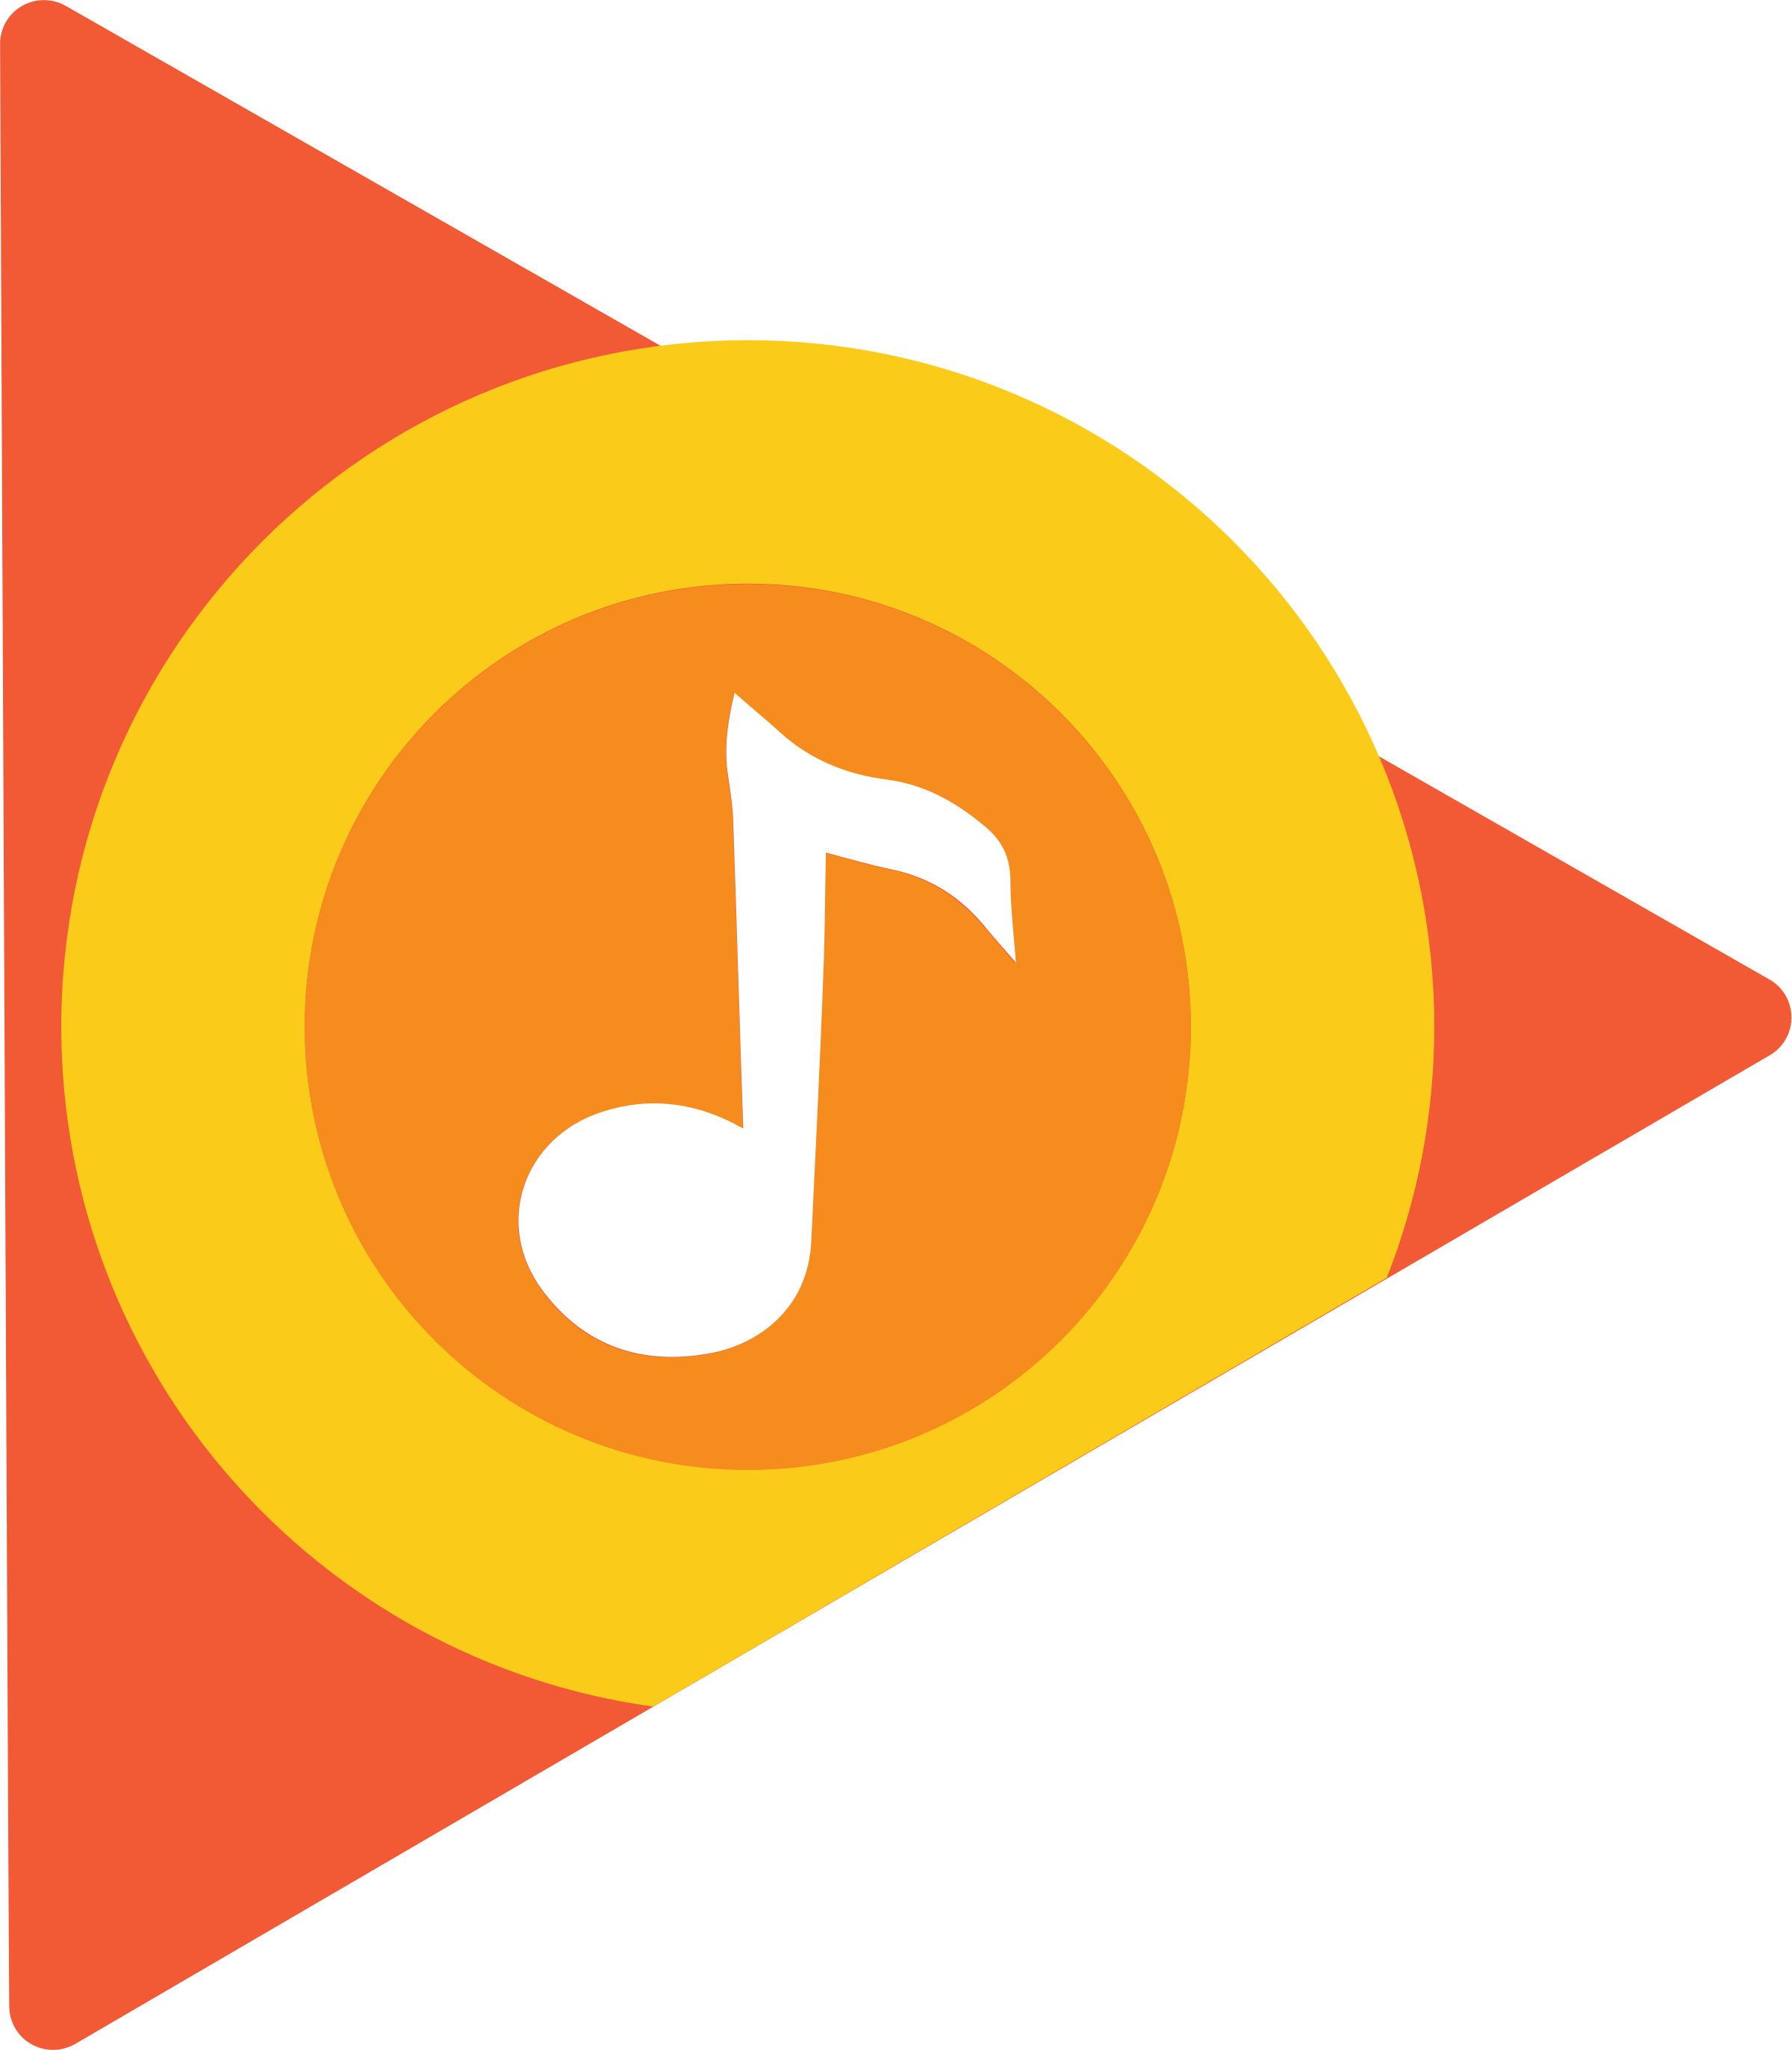 Google Play Music Logo PNG Transparent & SVG Vector.